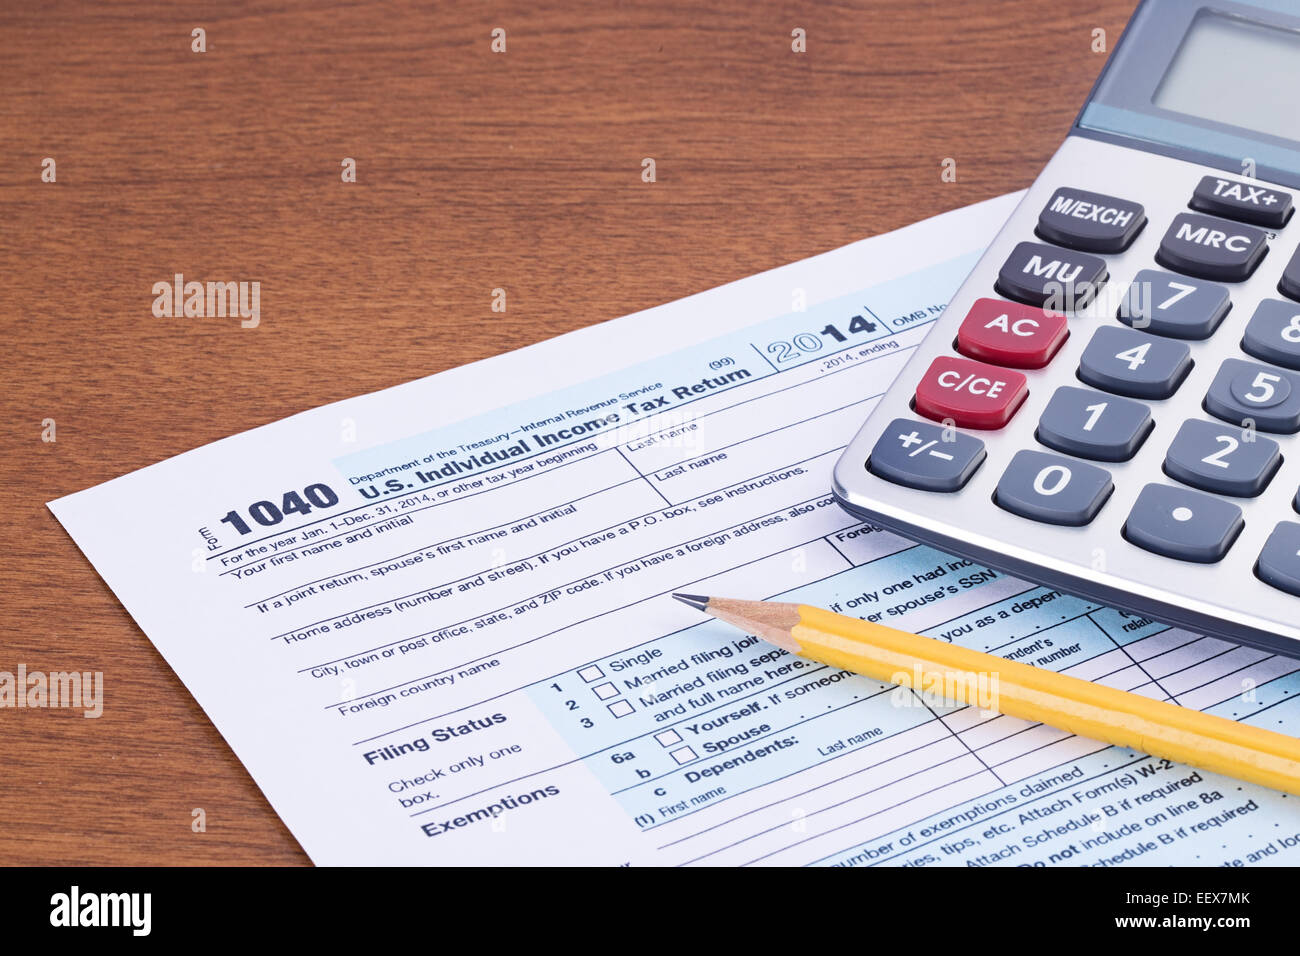 Income Tax Form Stock Photos Amp Income Tax Form Stock Images